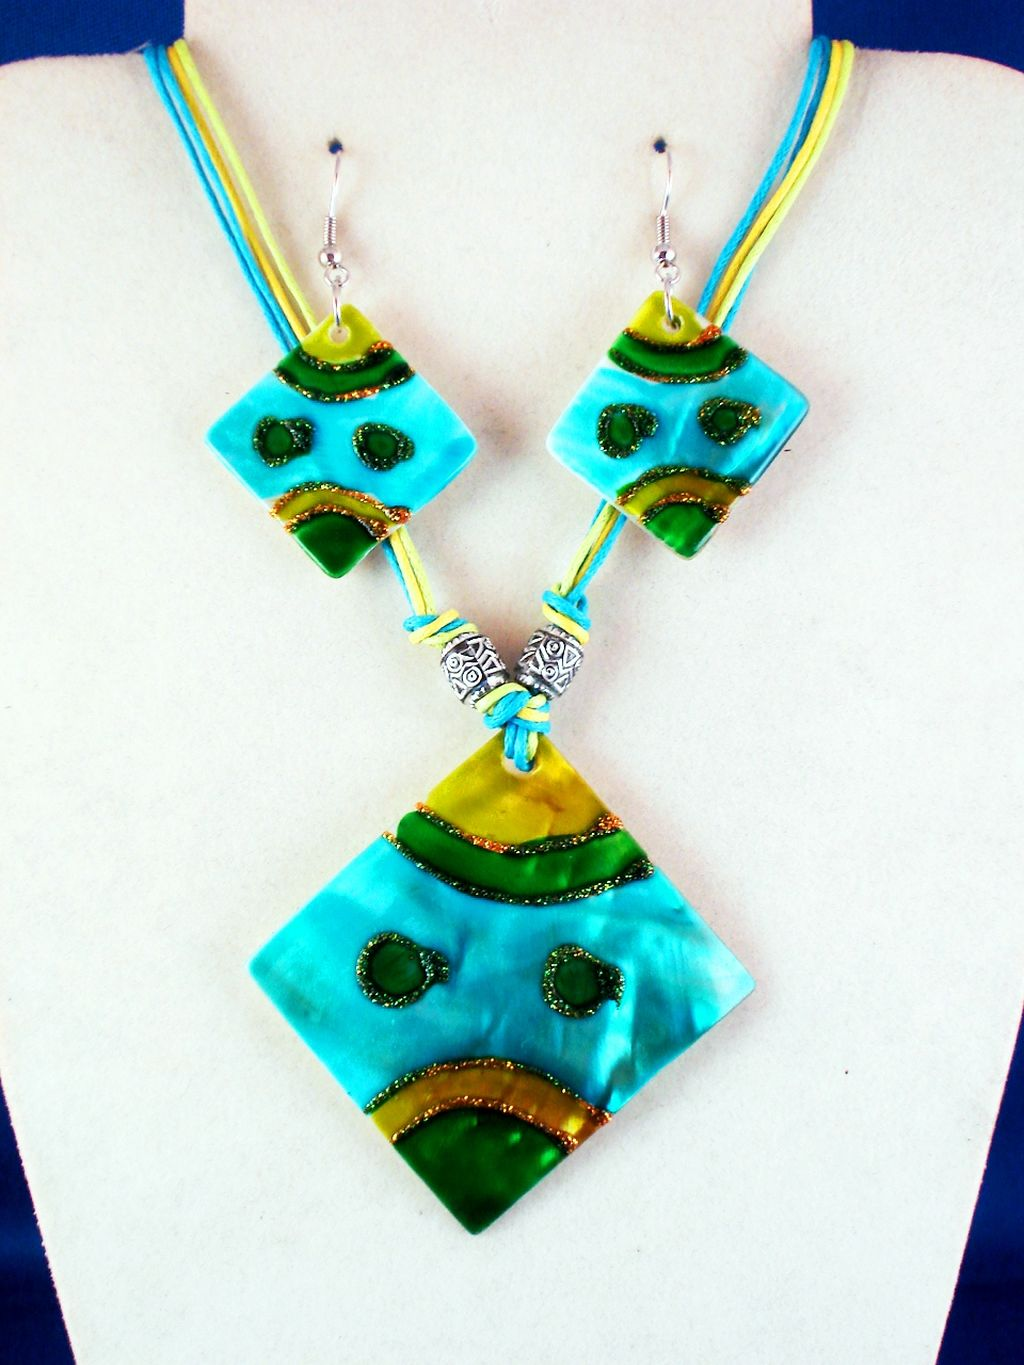 Yellow, Green, Turquoise, Crazy Summer Colors, Genuine Shells Rhomb Pendant Set of Necklace & Earrings, Metal Beads, Cotton Cord, European Fashion Jewelry